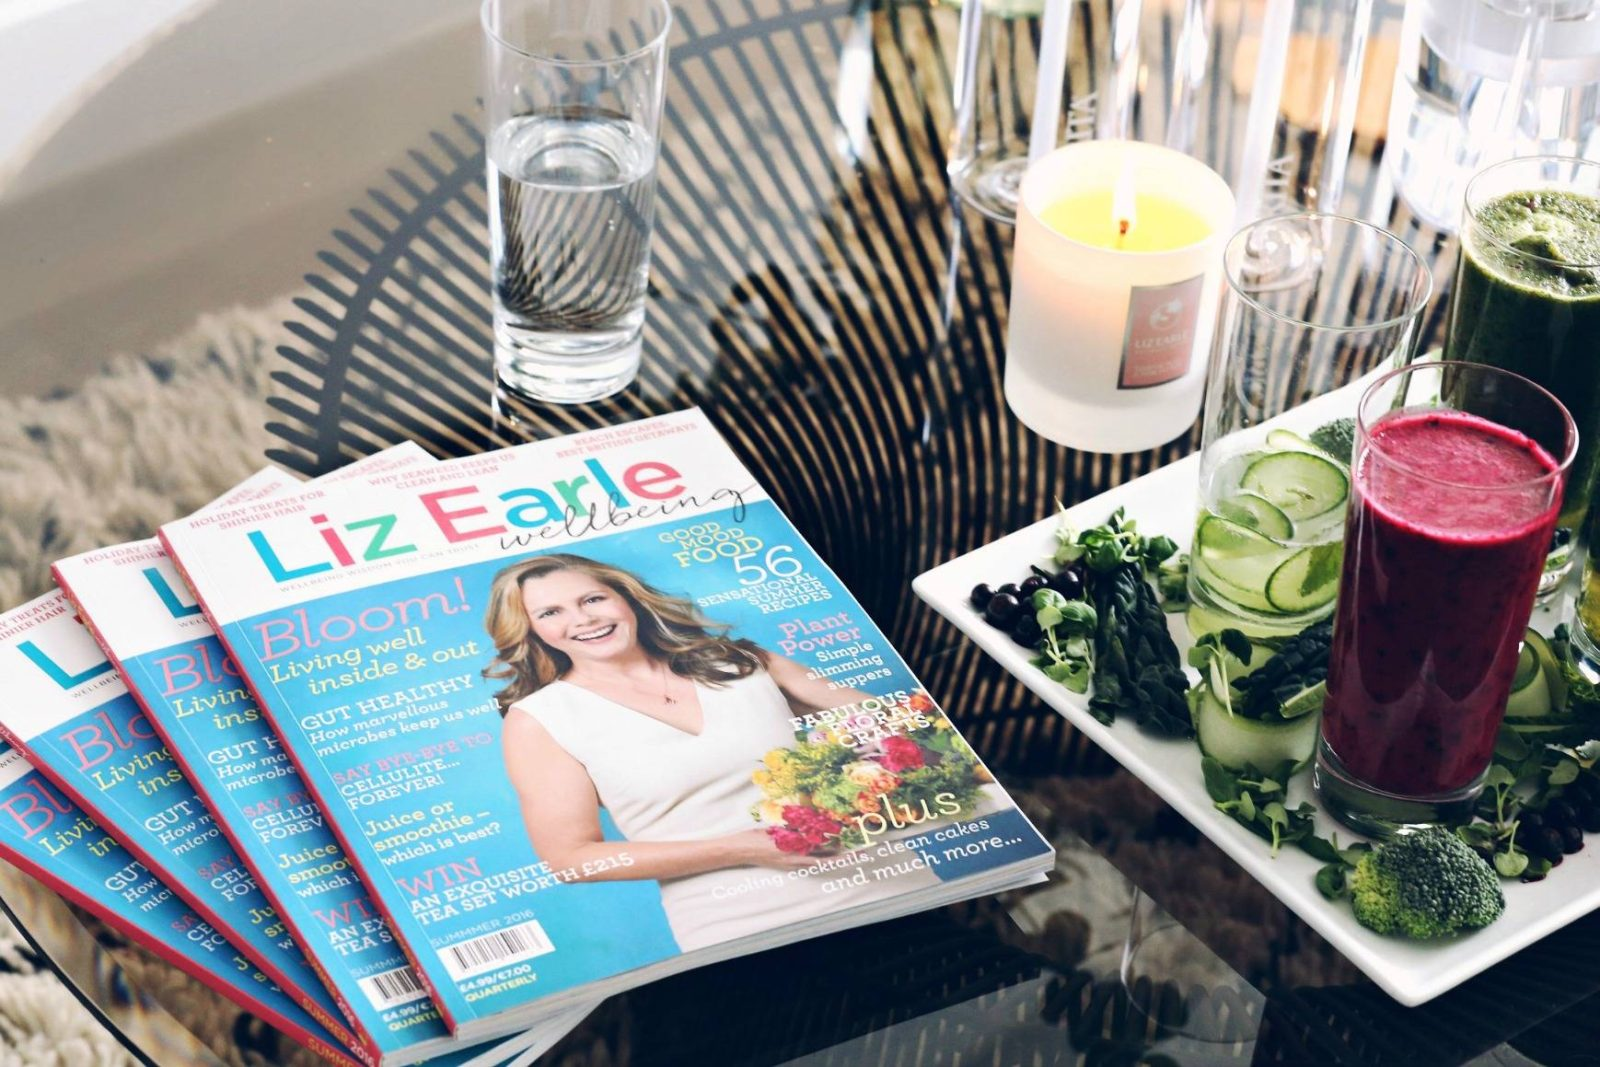 BRITA Wellbeing Power Hour with Liz Earle